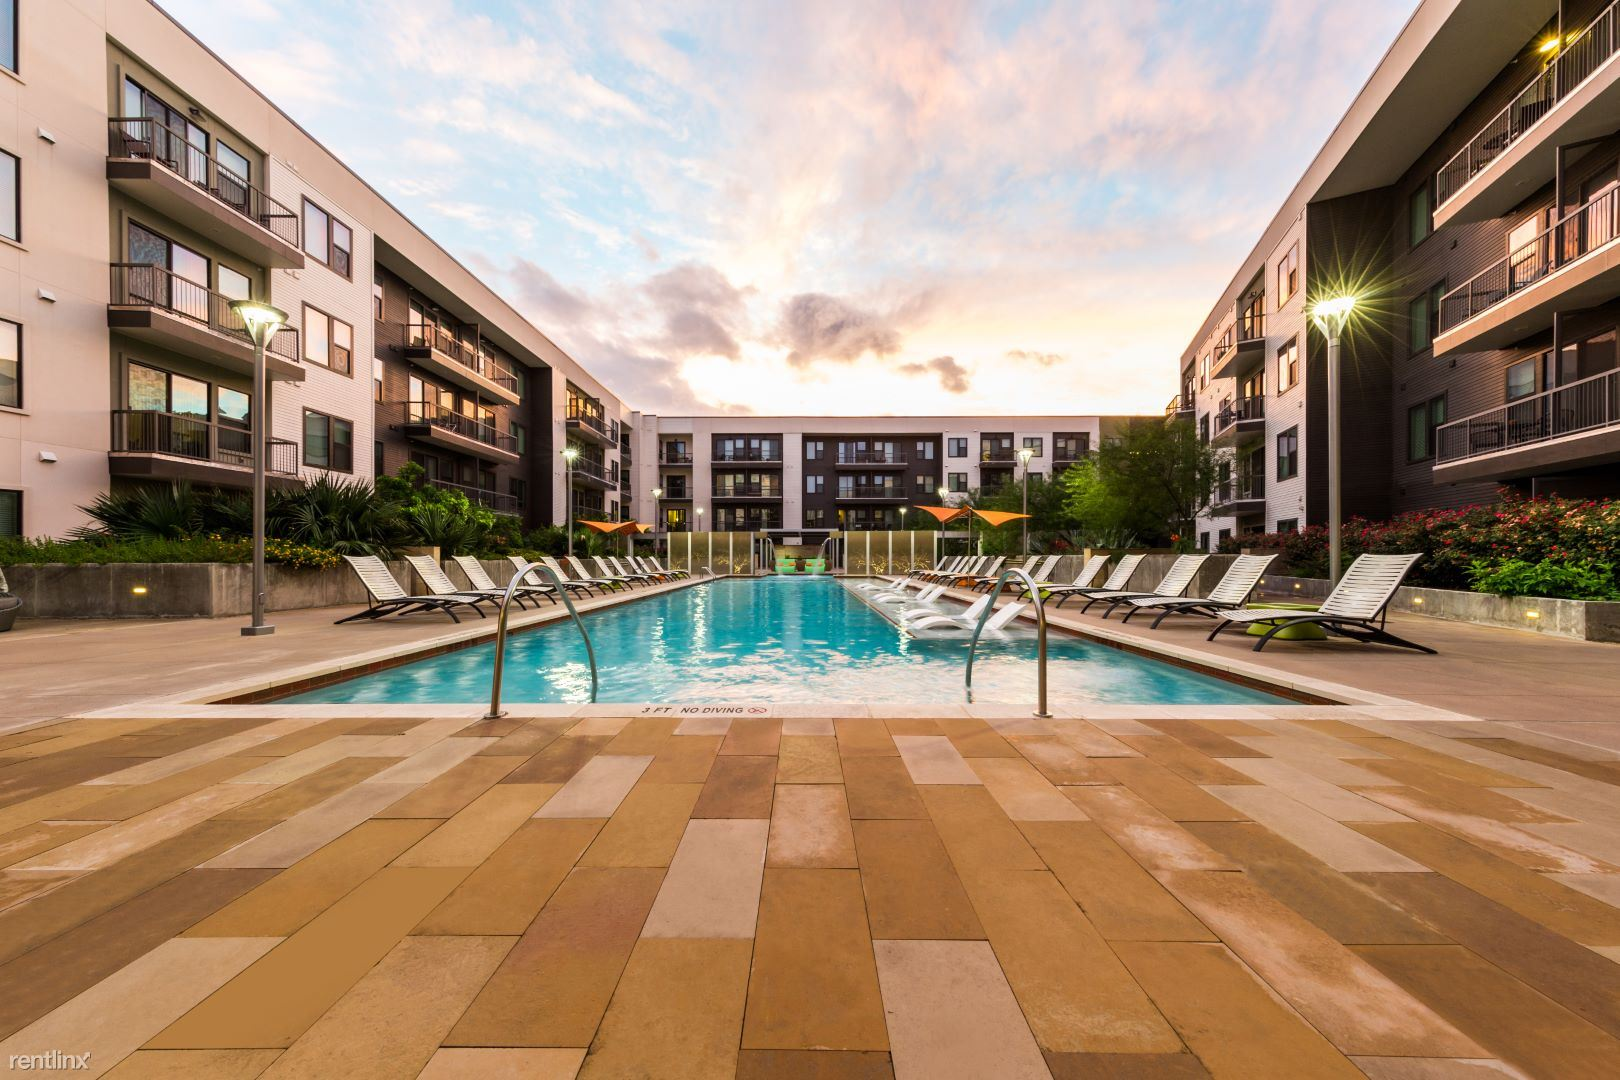 78705 / Live Uptown of University of Texas - 1917USD / month